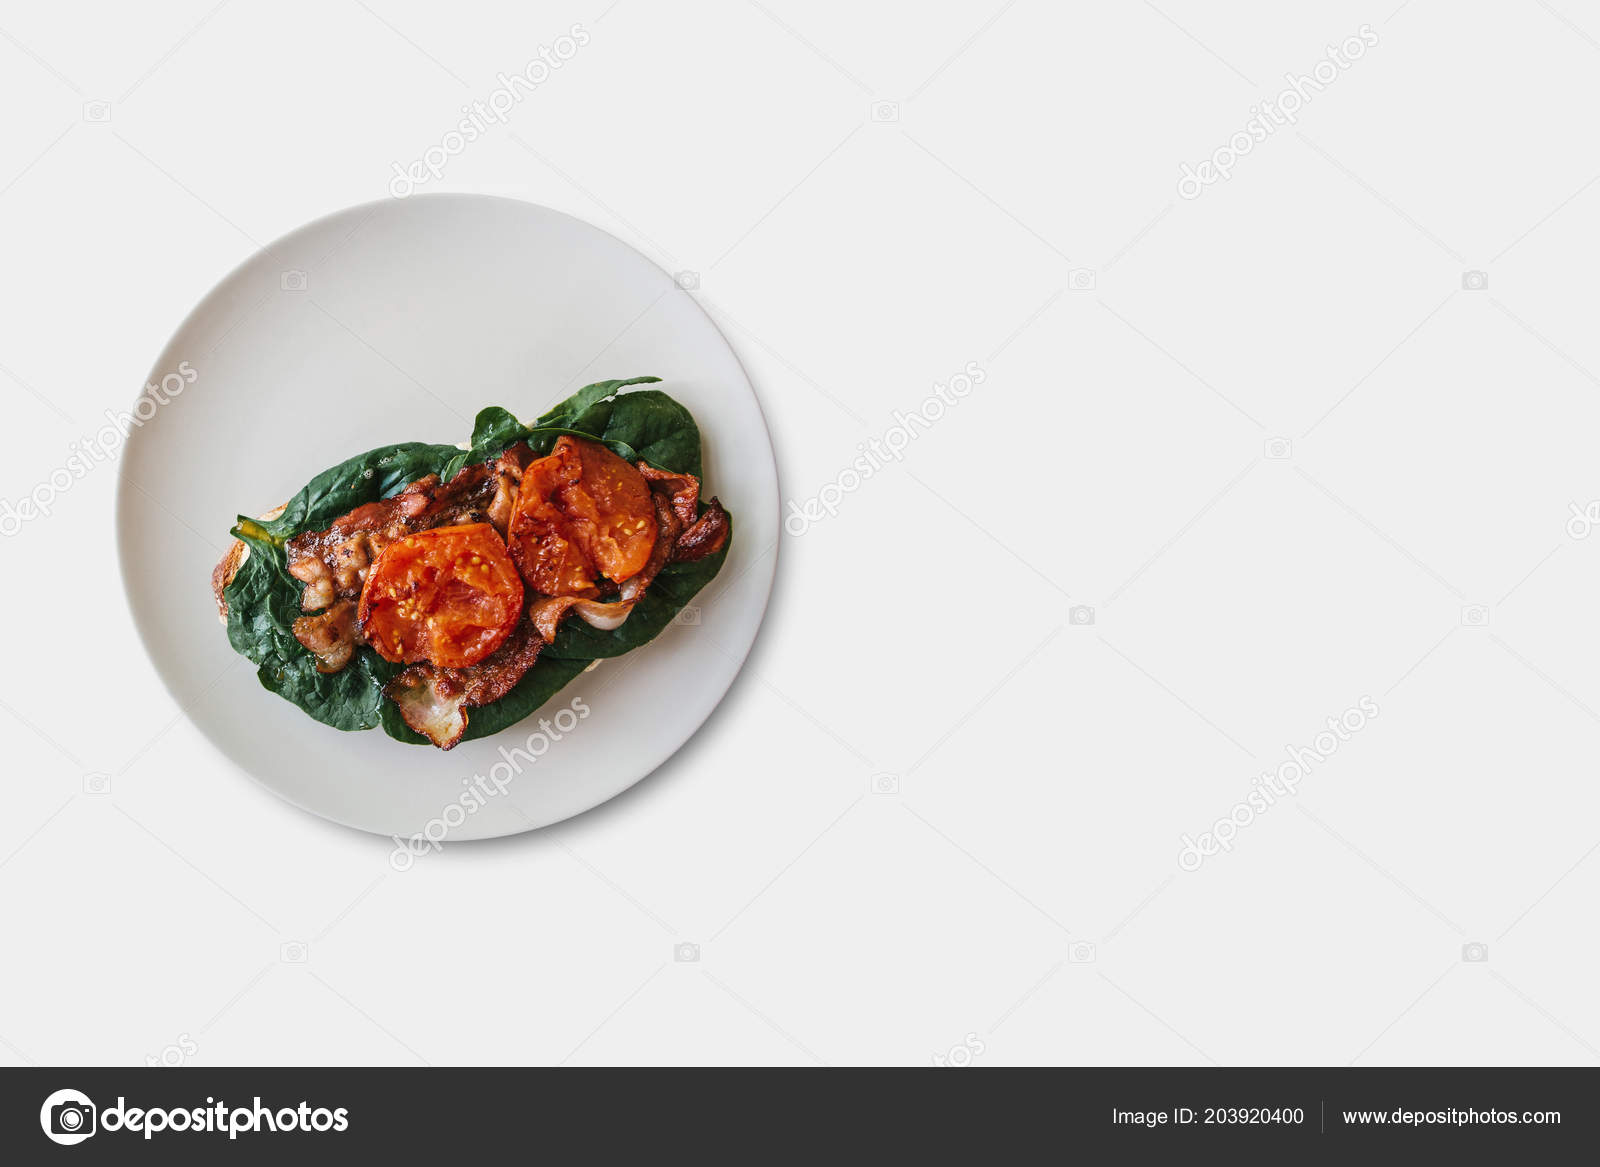 Food Nearby Delicious And Nutritious Toast Or Sandwich With Bacon Spinach And